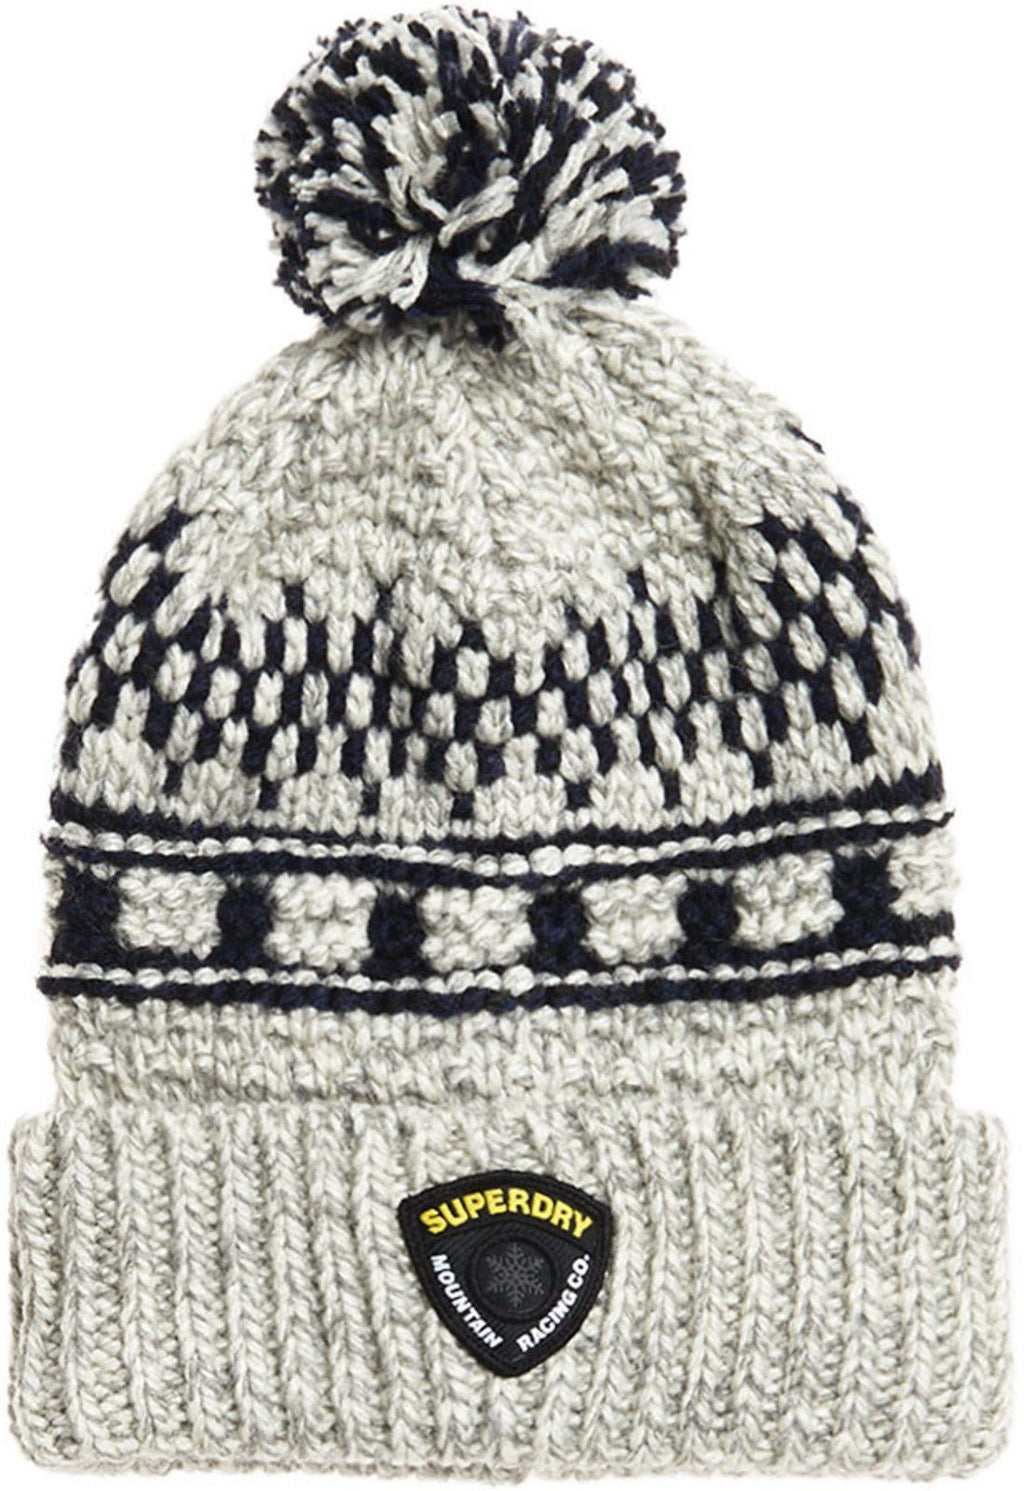 Superdry Jackson Beanie Hat Concrete Twist